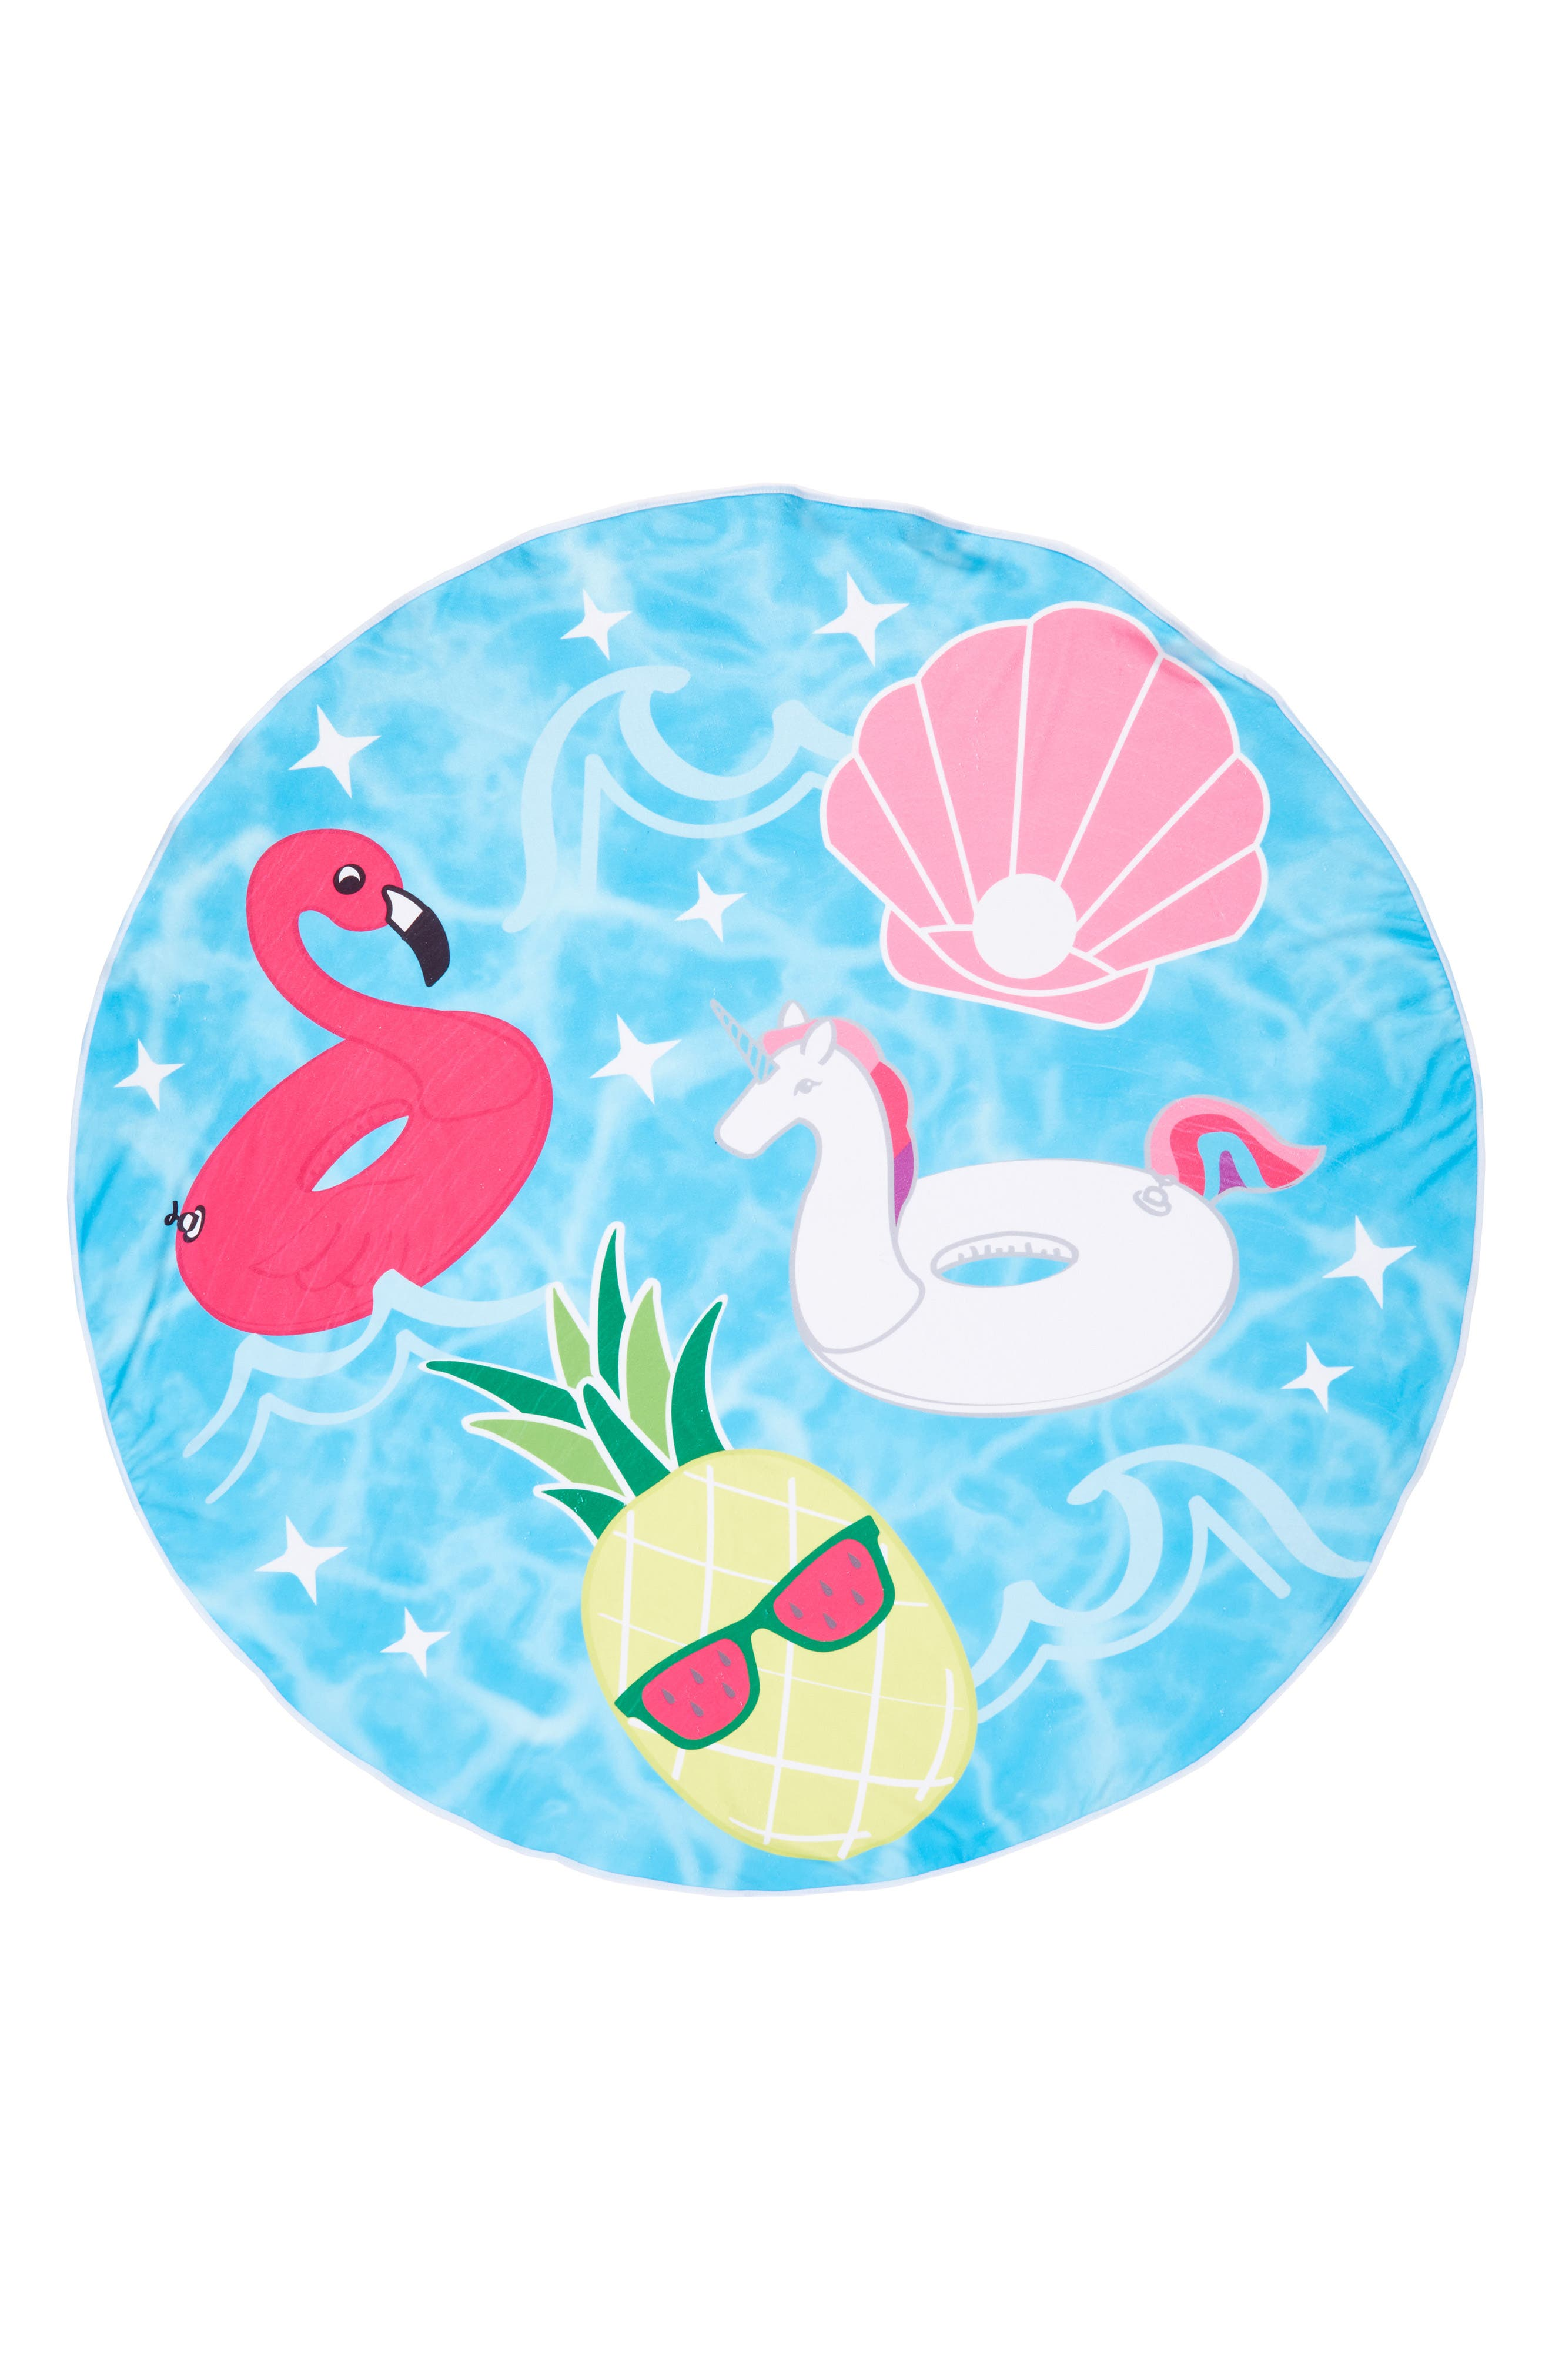 Cool Pool Round Towel,                             Main thumbnail 1, color,                             Cool Pool Floats